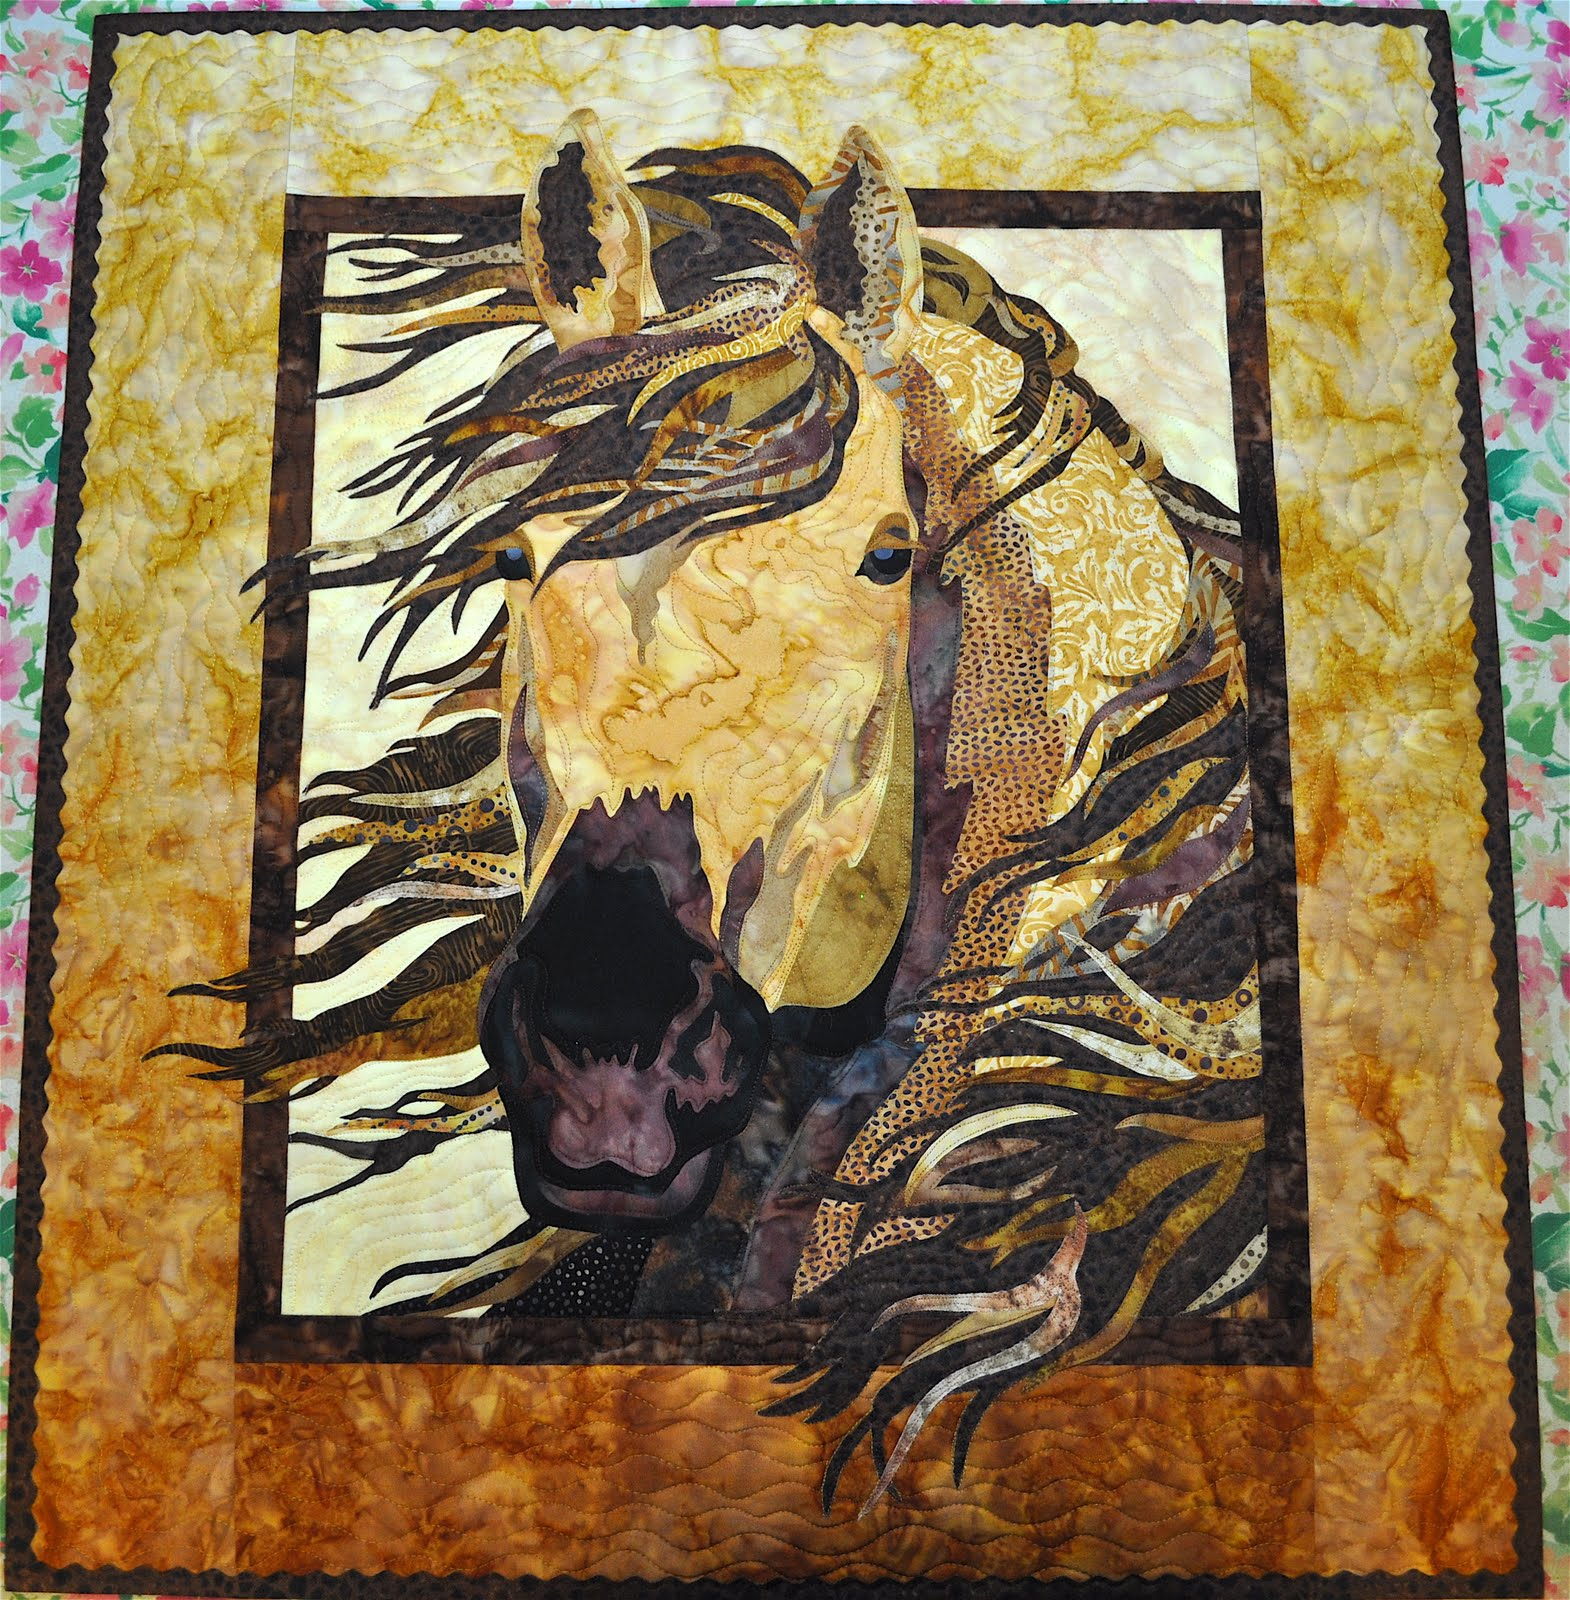 Quilt Patterns With Horses : LuAnn Kessi: Horse Quilt.......#2